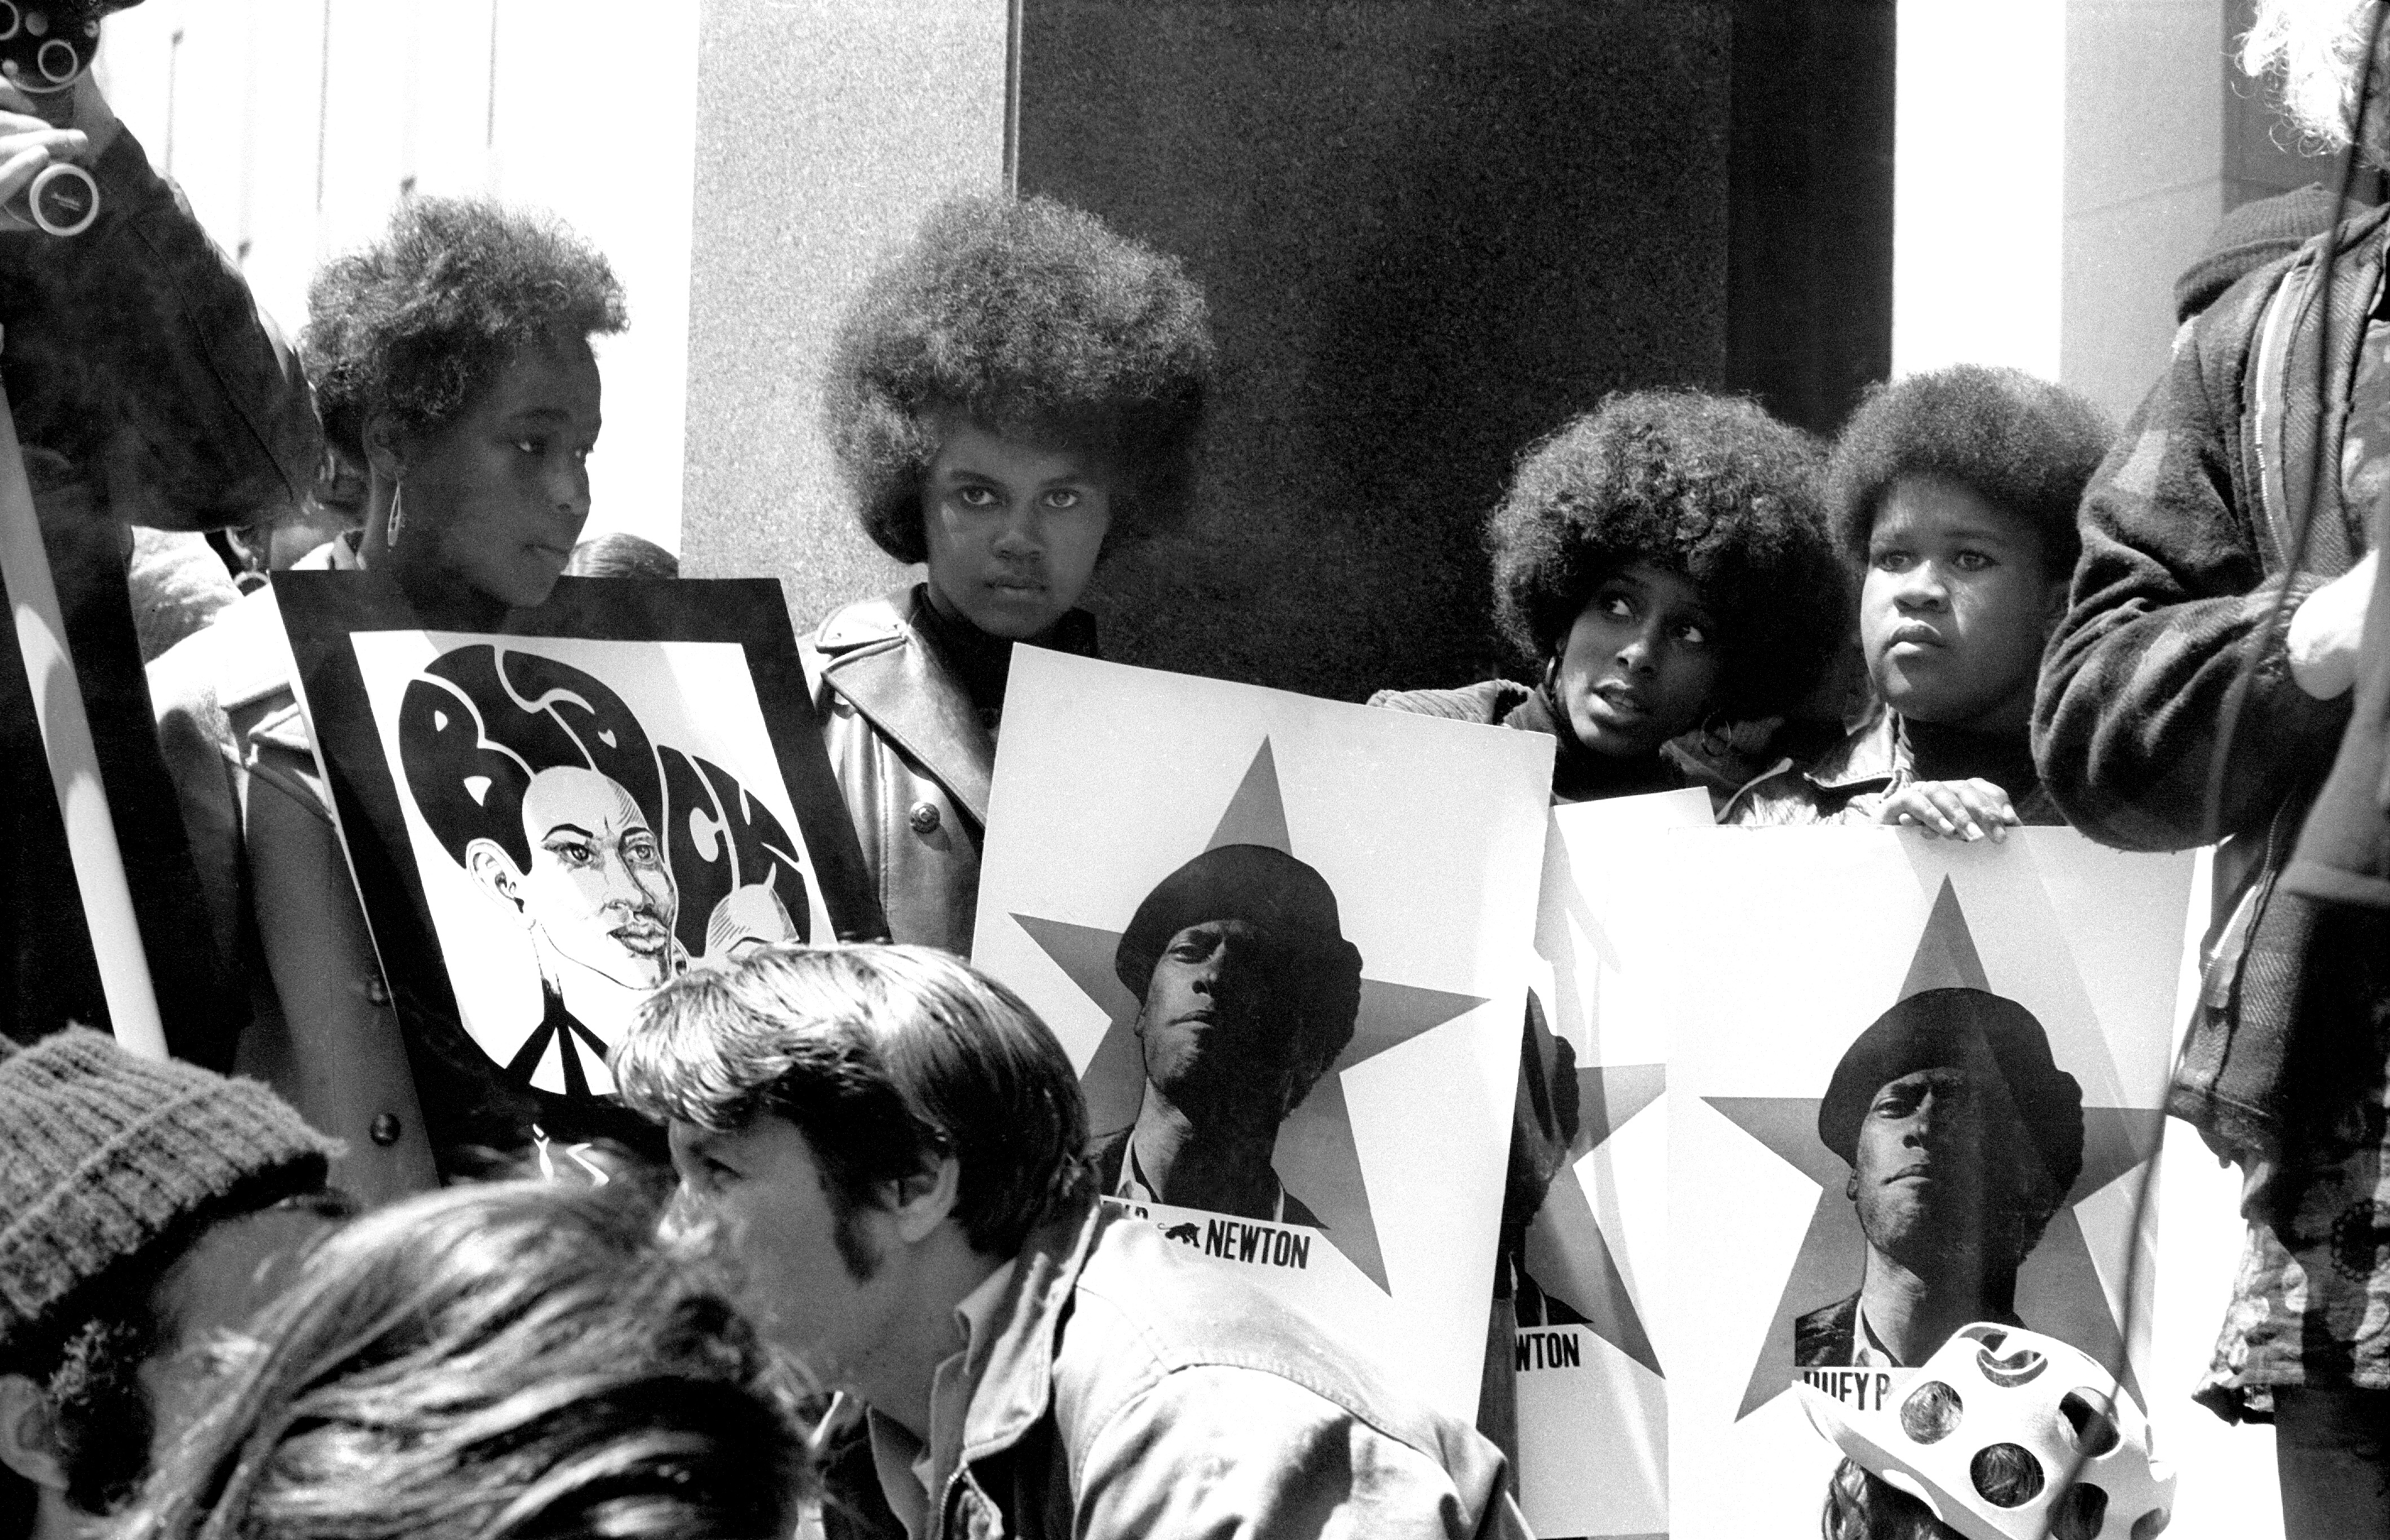 A group of Black women hold signs showing a picture of Black Panthers Party co-founder Huey P. Newton at a protest in 1969.